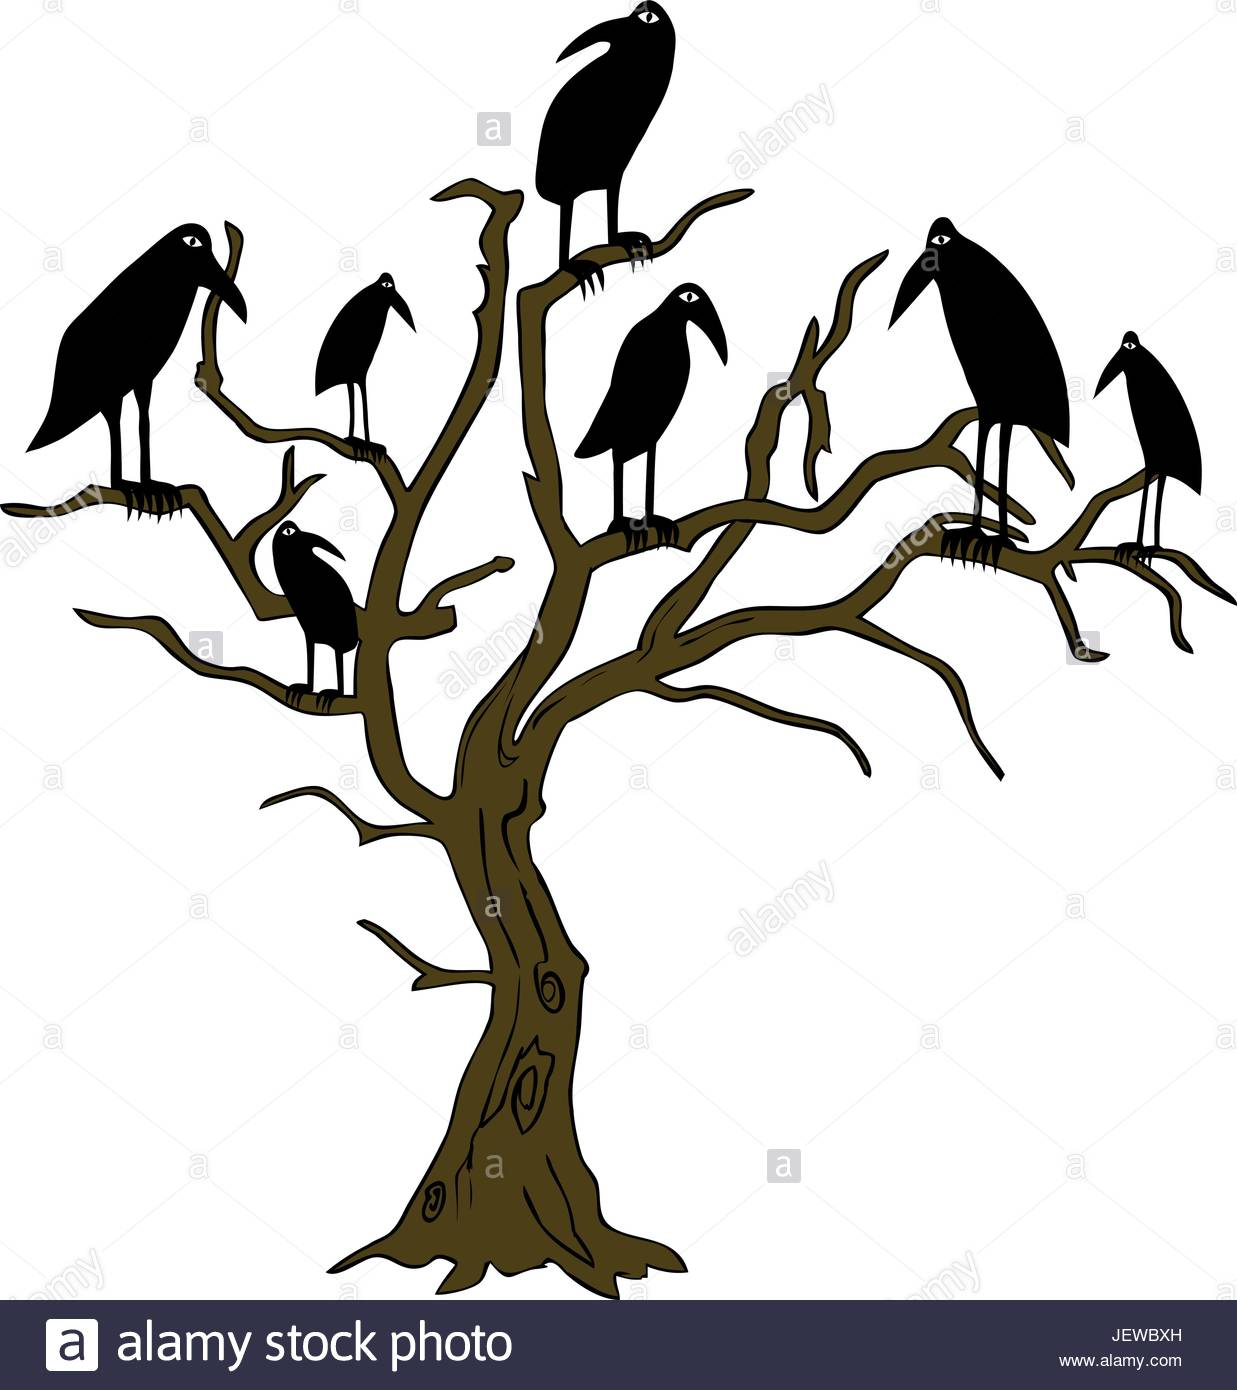 1237x1390 Tree, Scary, Halloween, Spooky, Raven, Vector, Ghostly, Symbolic